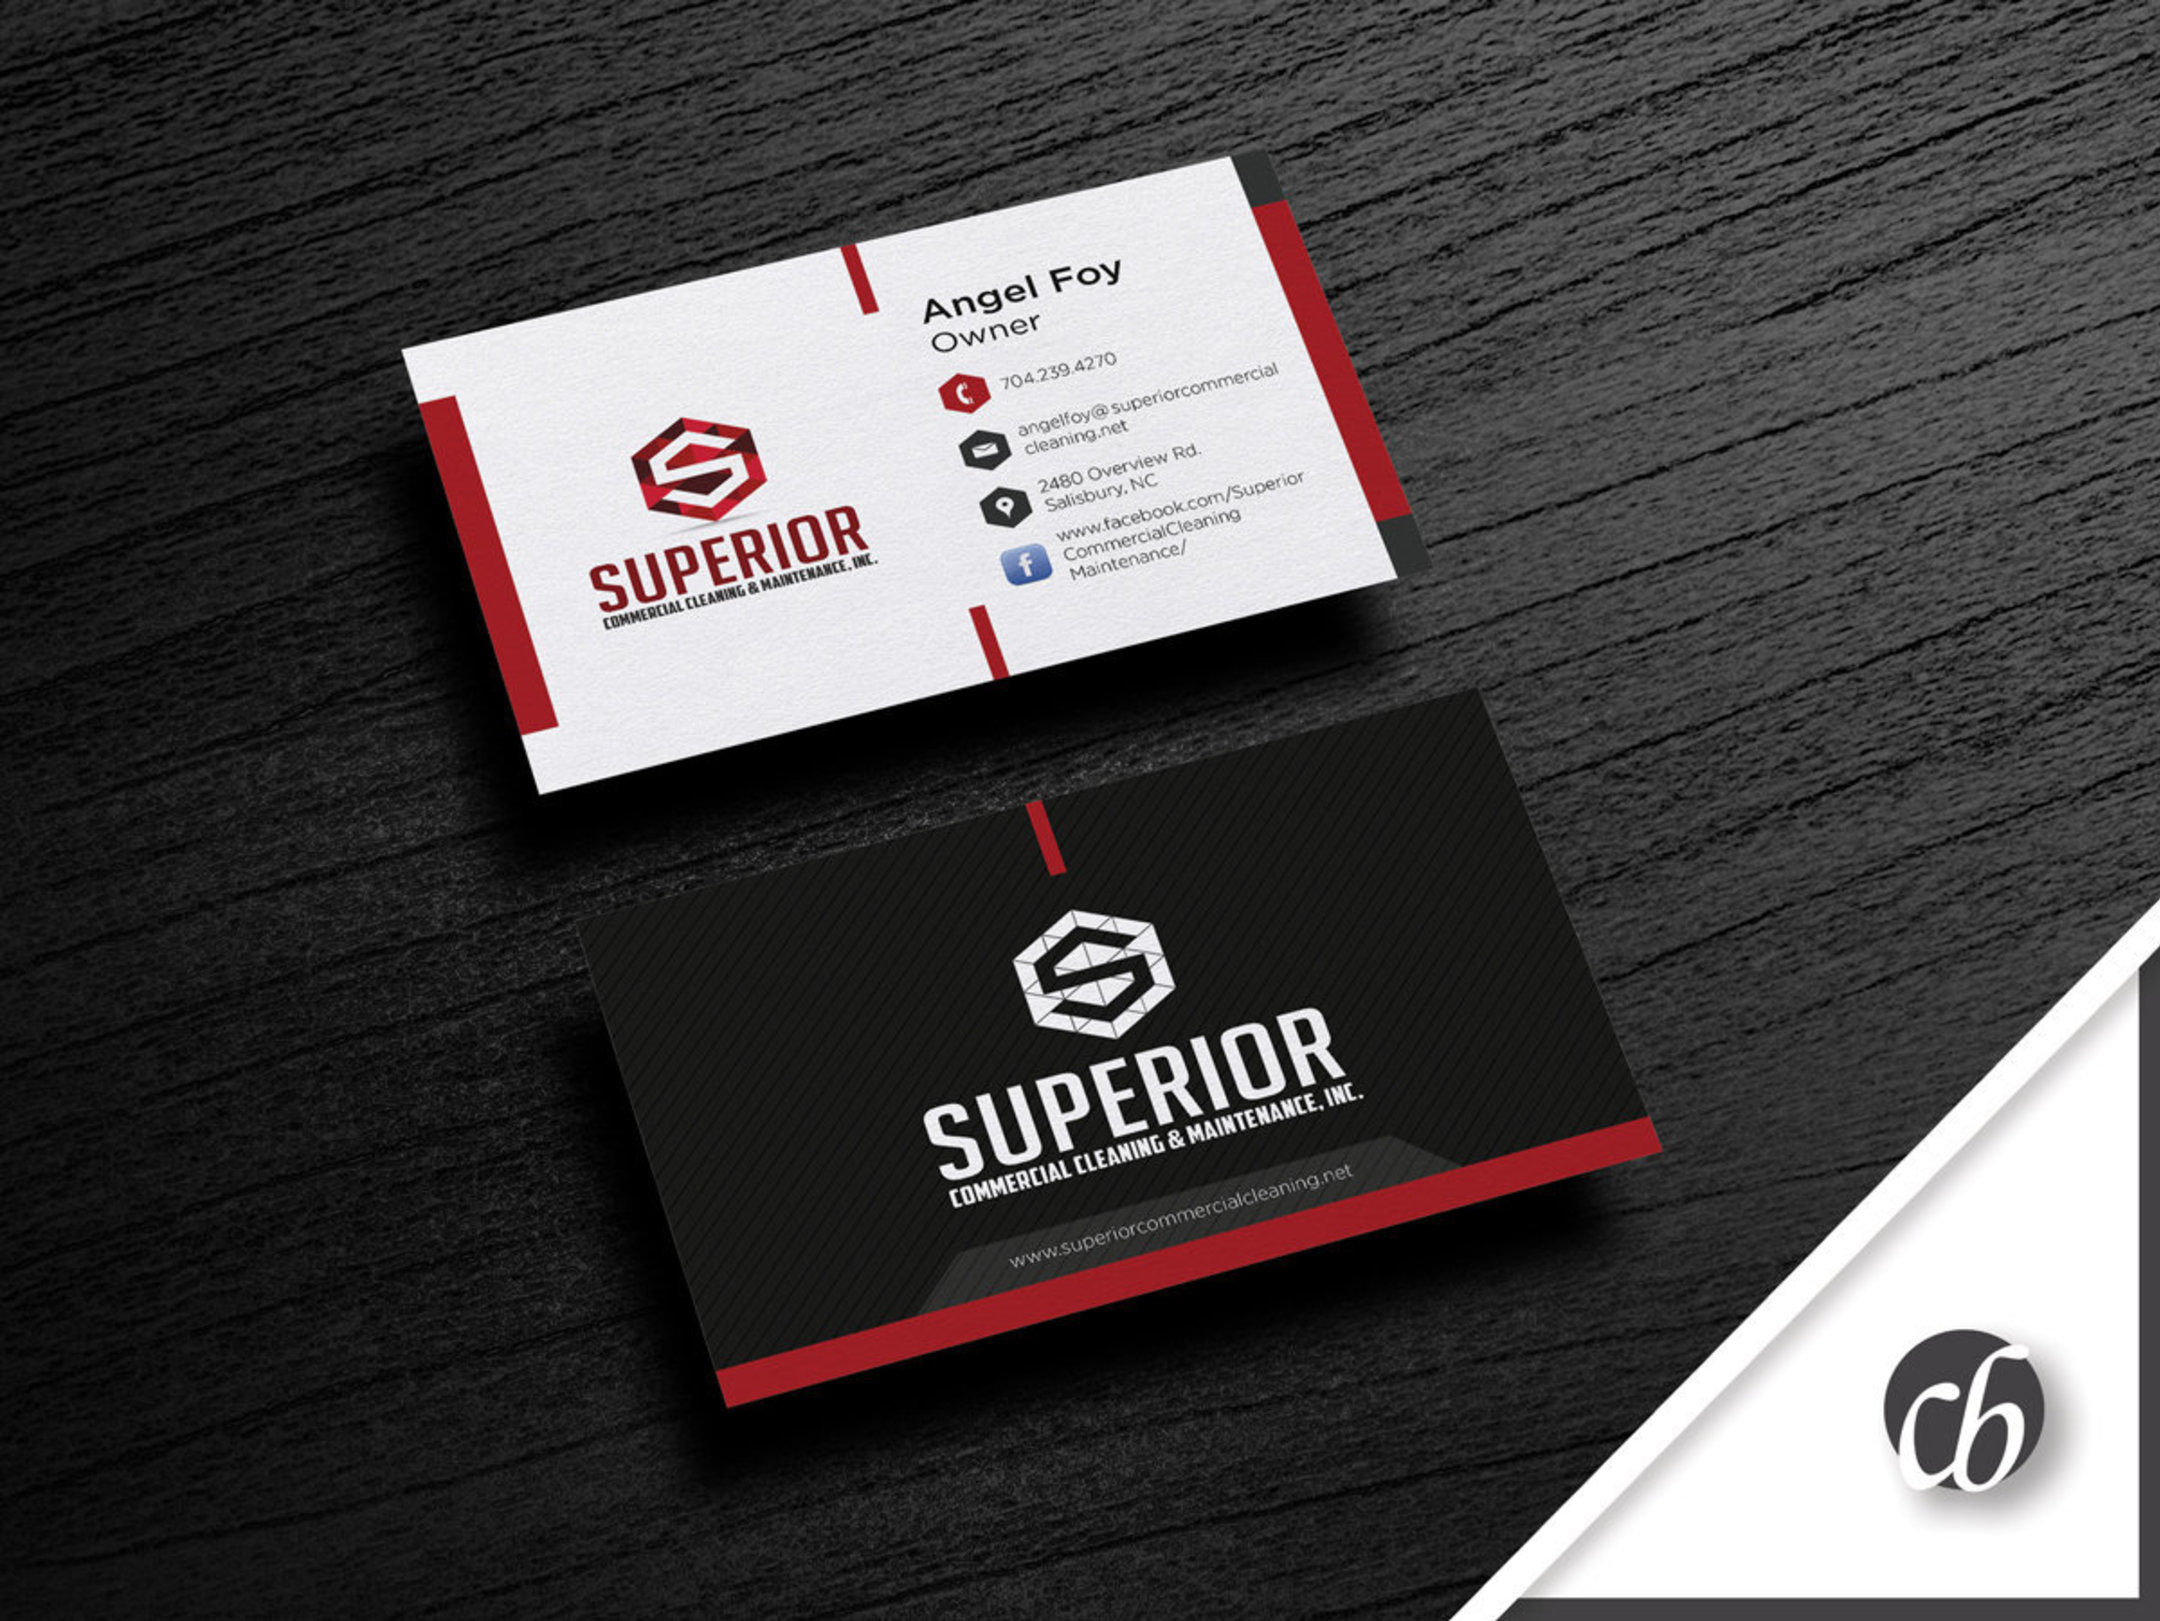 Logo business card superior commercial cleaning chris barber business card layout superior colourmoves Gallery